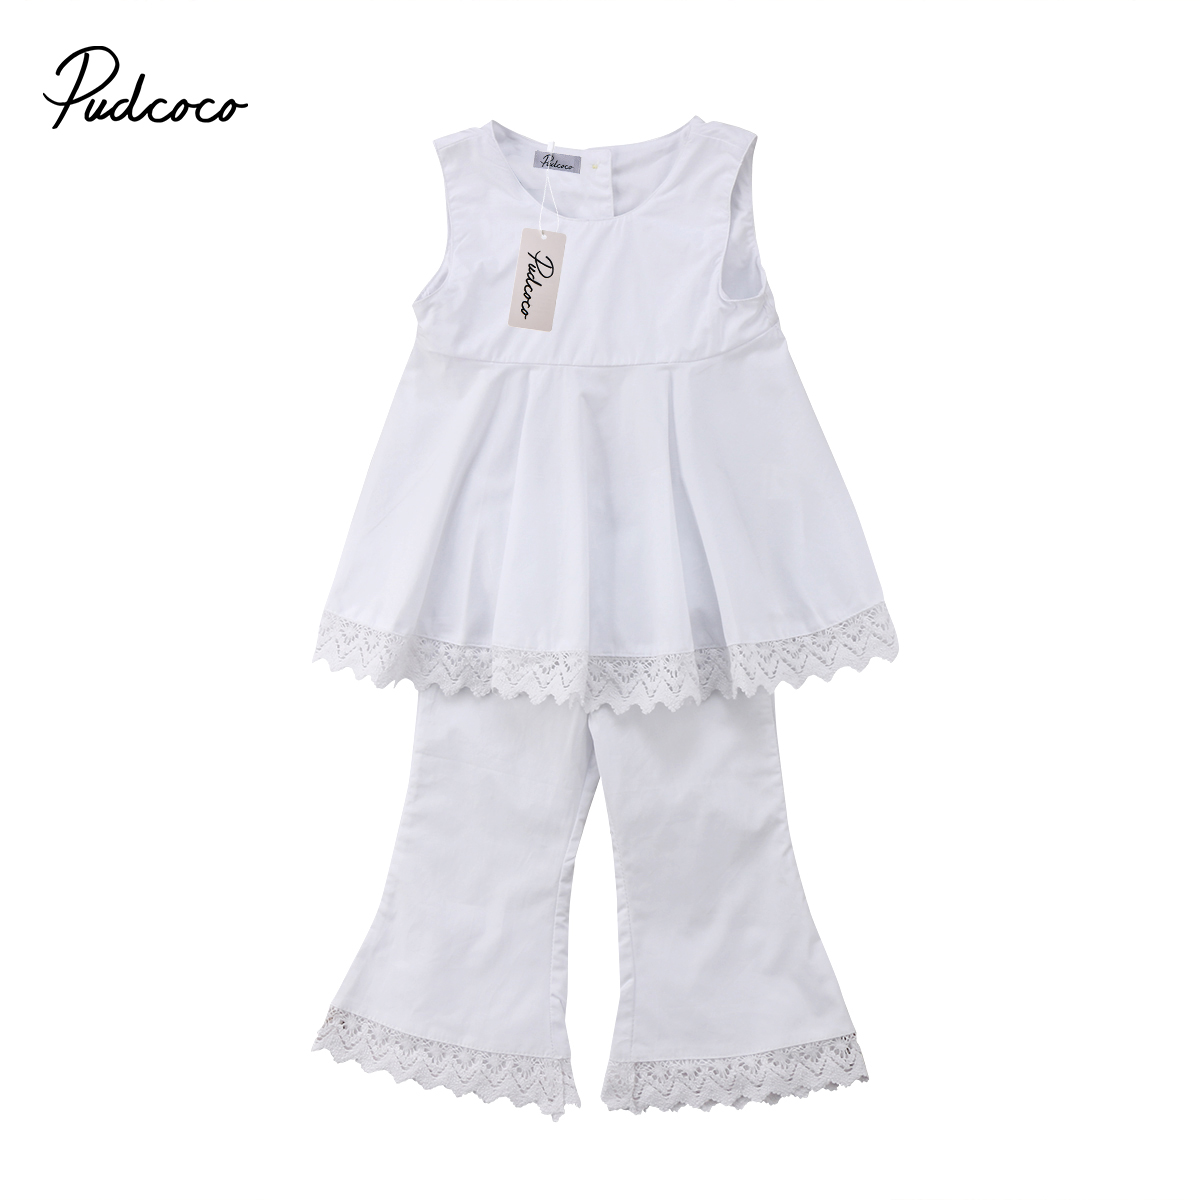 Summer Toddler Kids Baby Girls Clothing Set T-Shirts Vest Tops Blouse Flare Long Pants Outfits 2pcs